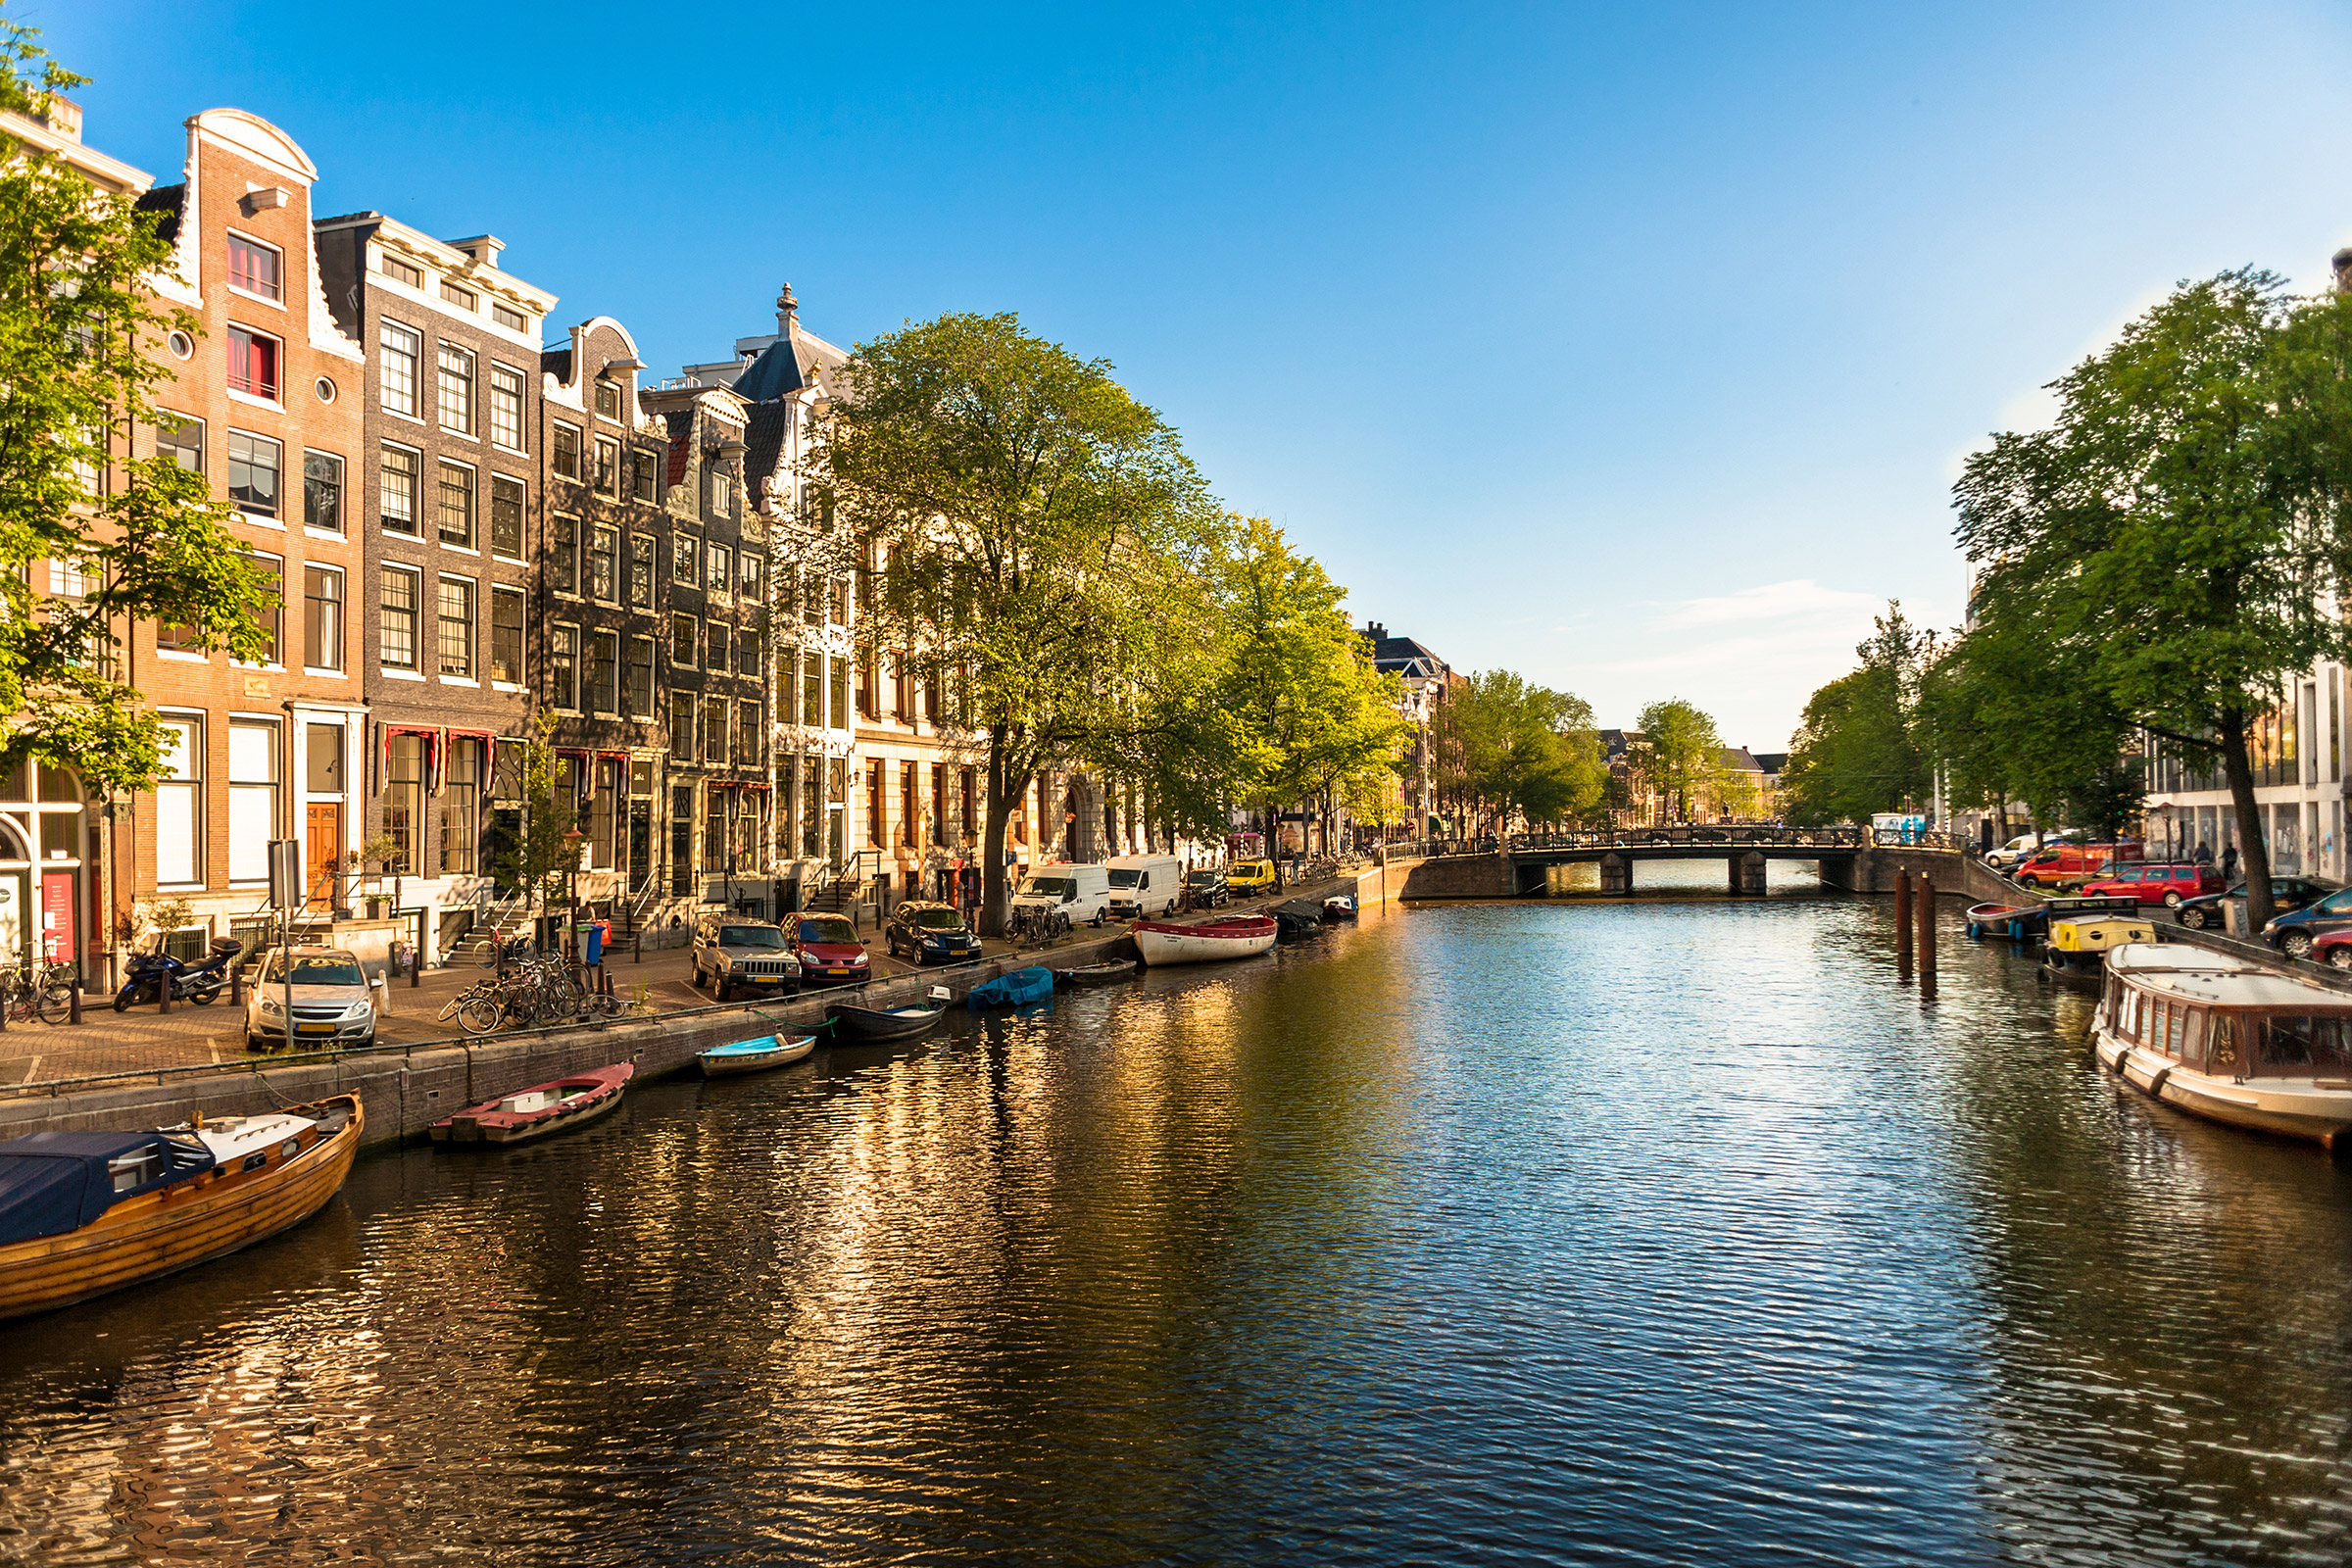 Netherlands Canals of Amsterdam